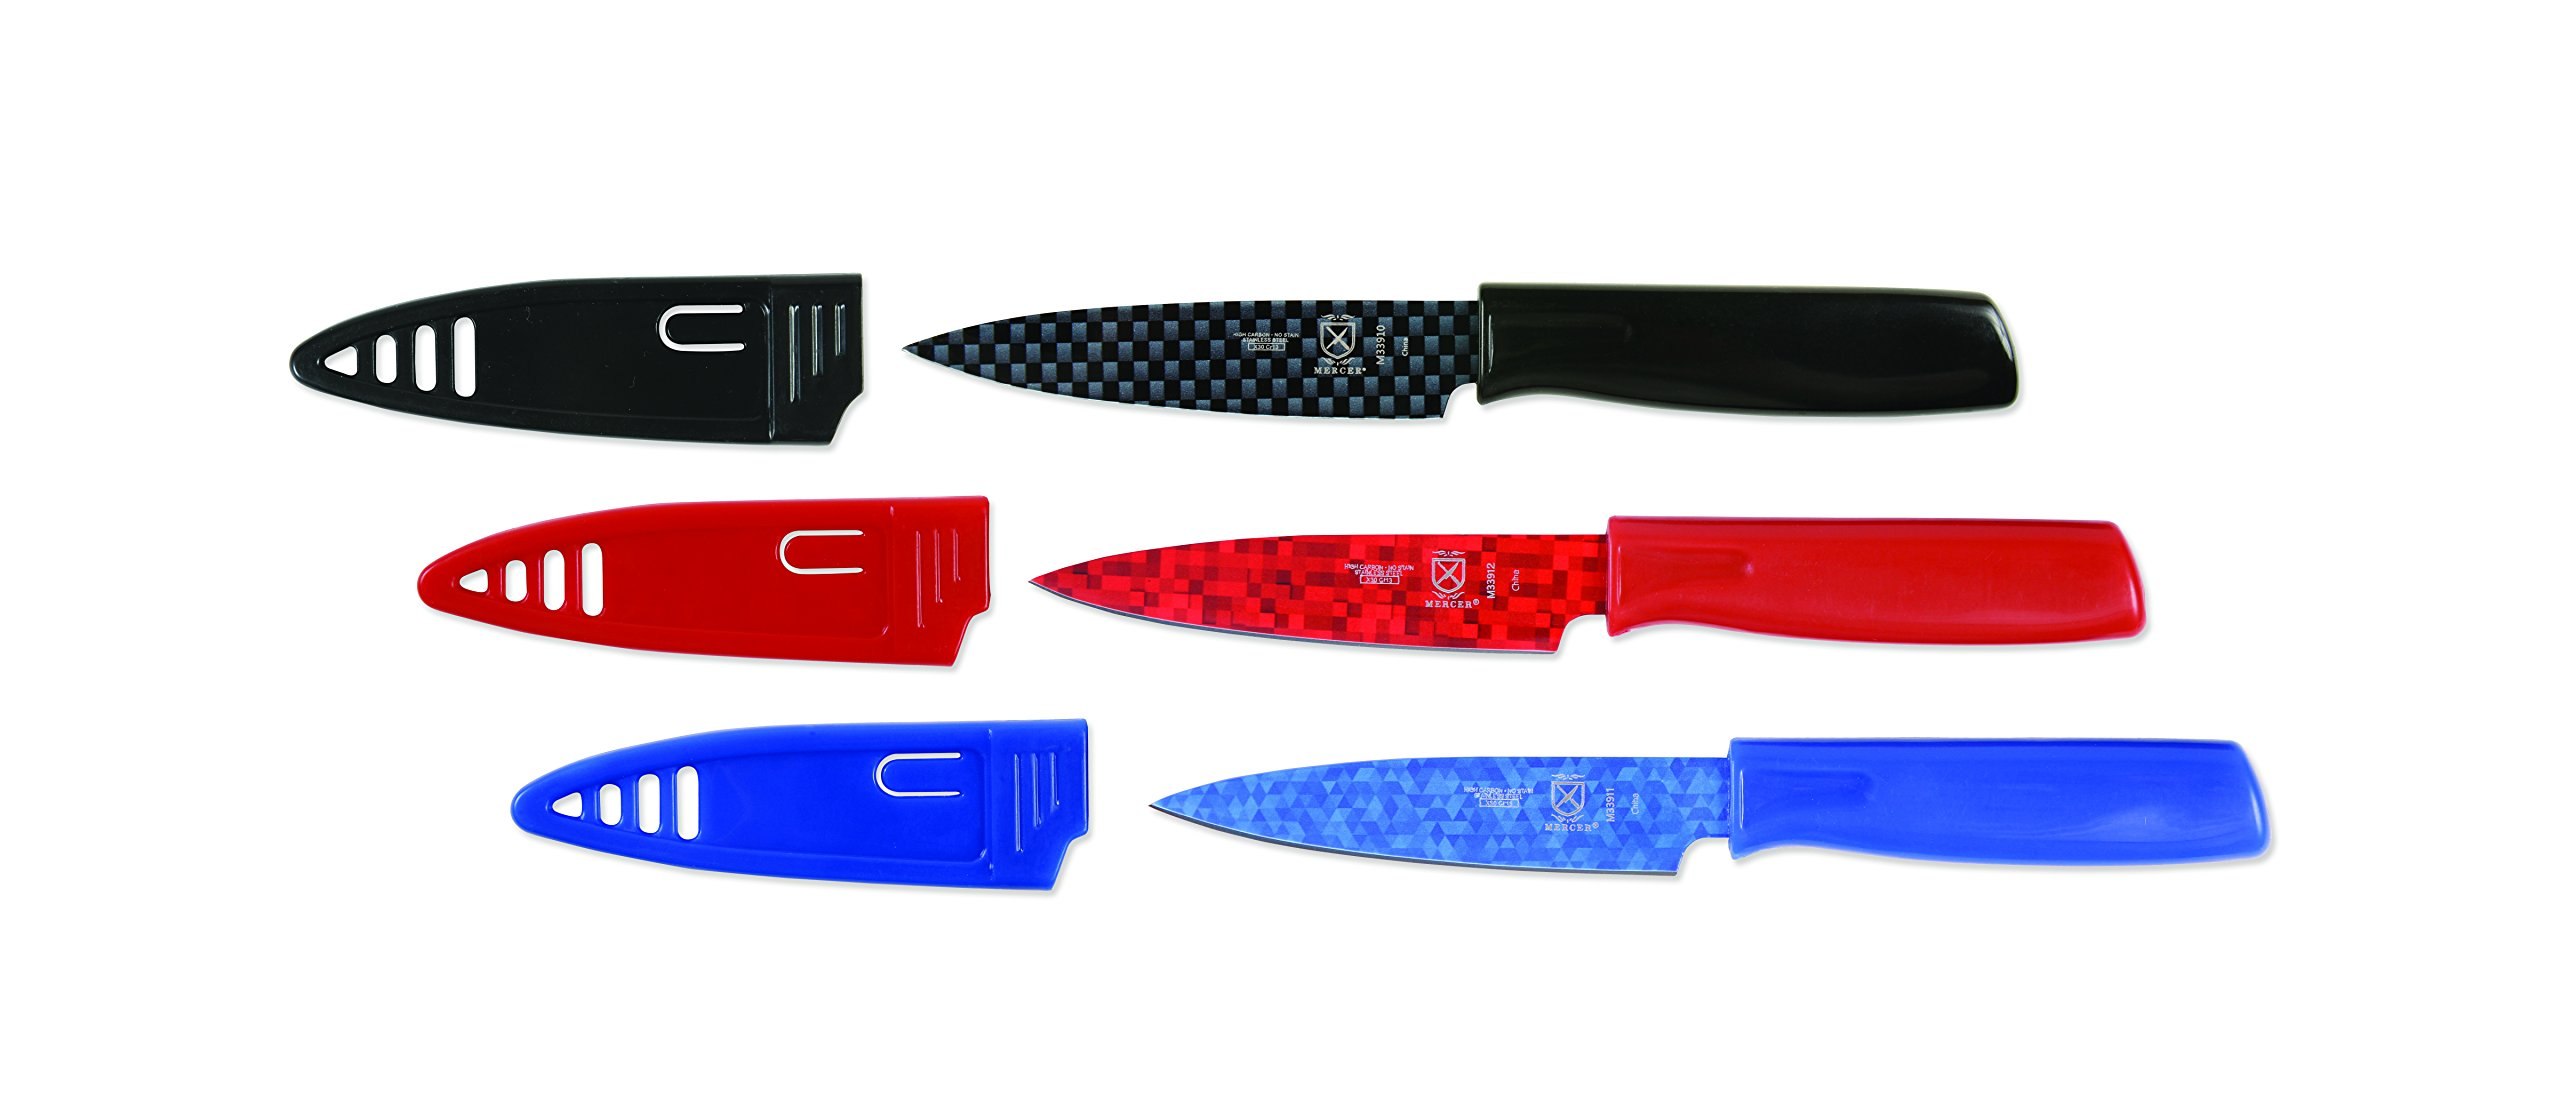 Mercer Culinary Non-Stick Paring Knives with ABS Sheaths, 4 Inch, Red/Blue/Black, 3 Pack by Mercer Culinary